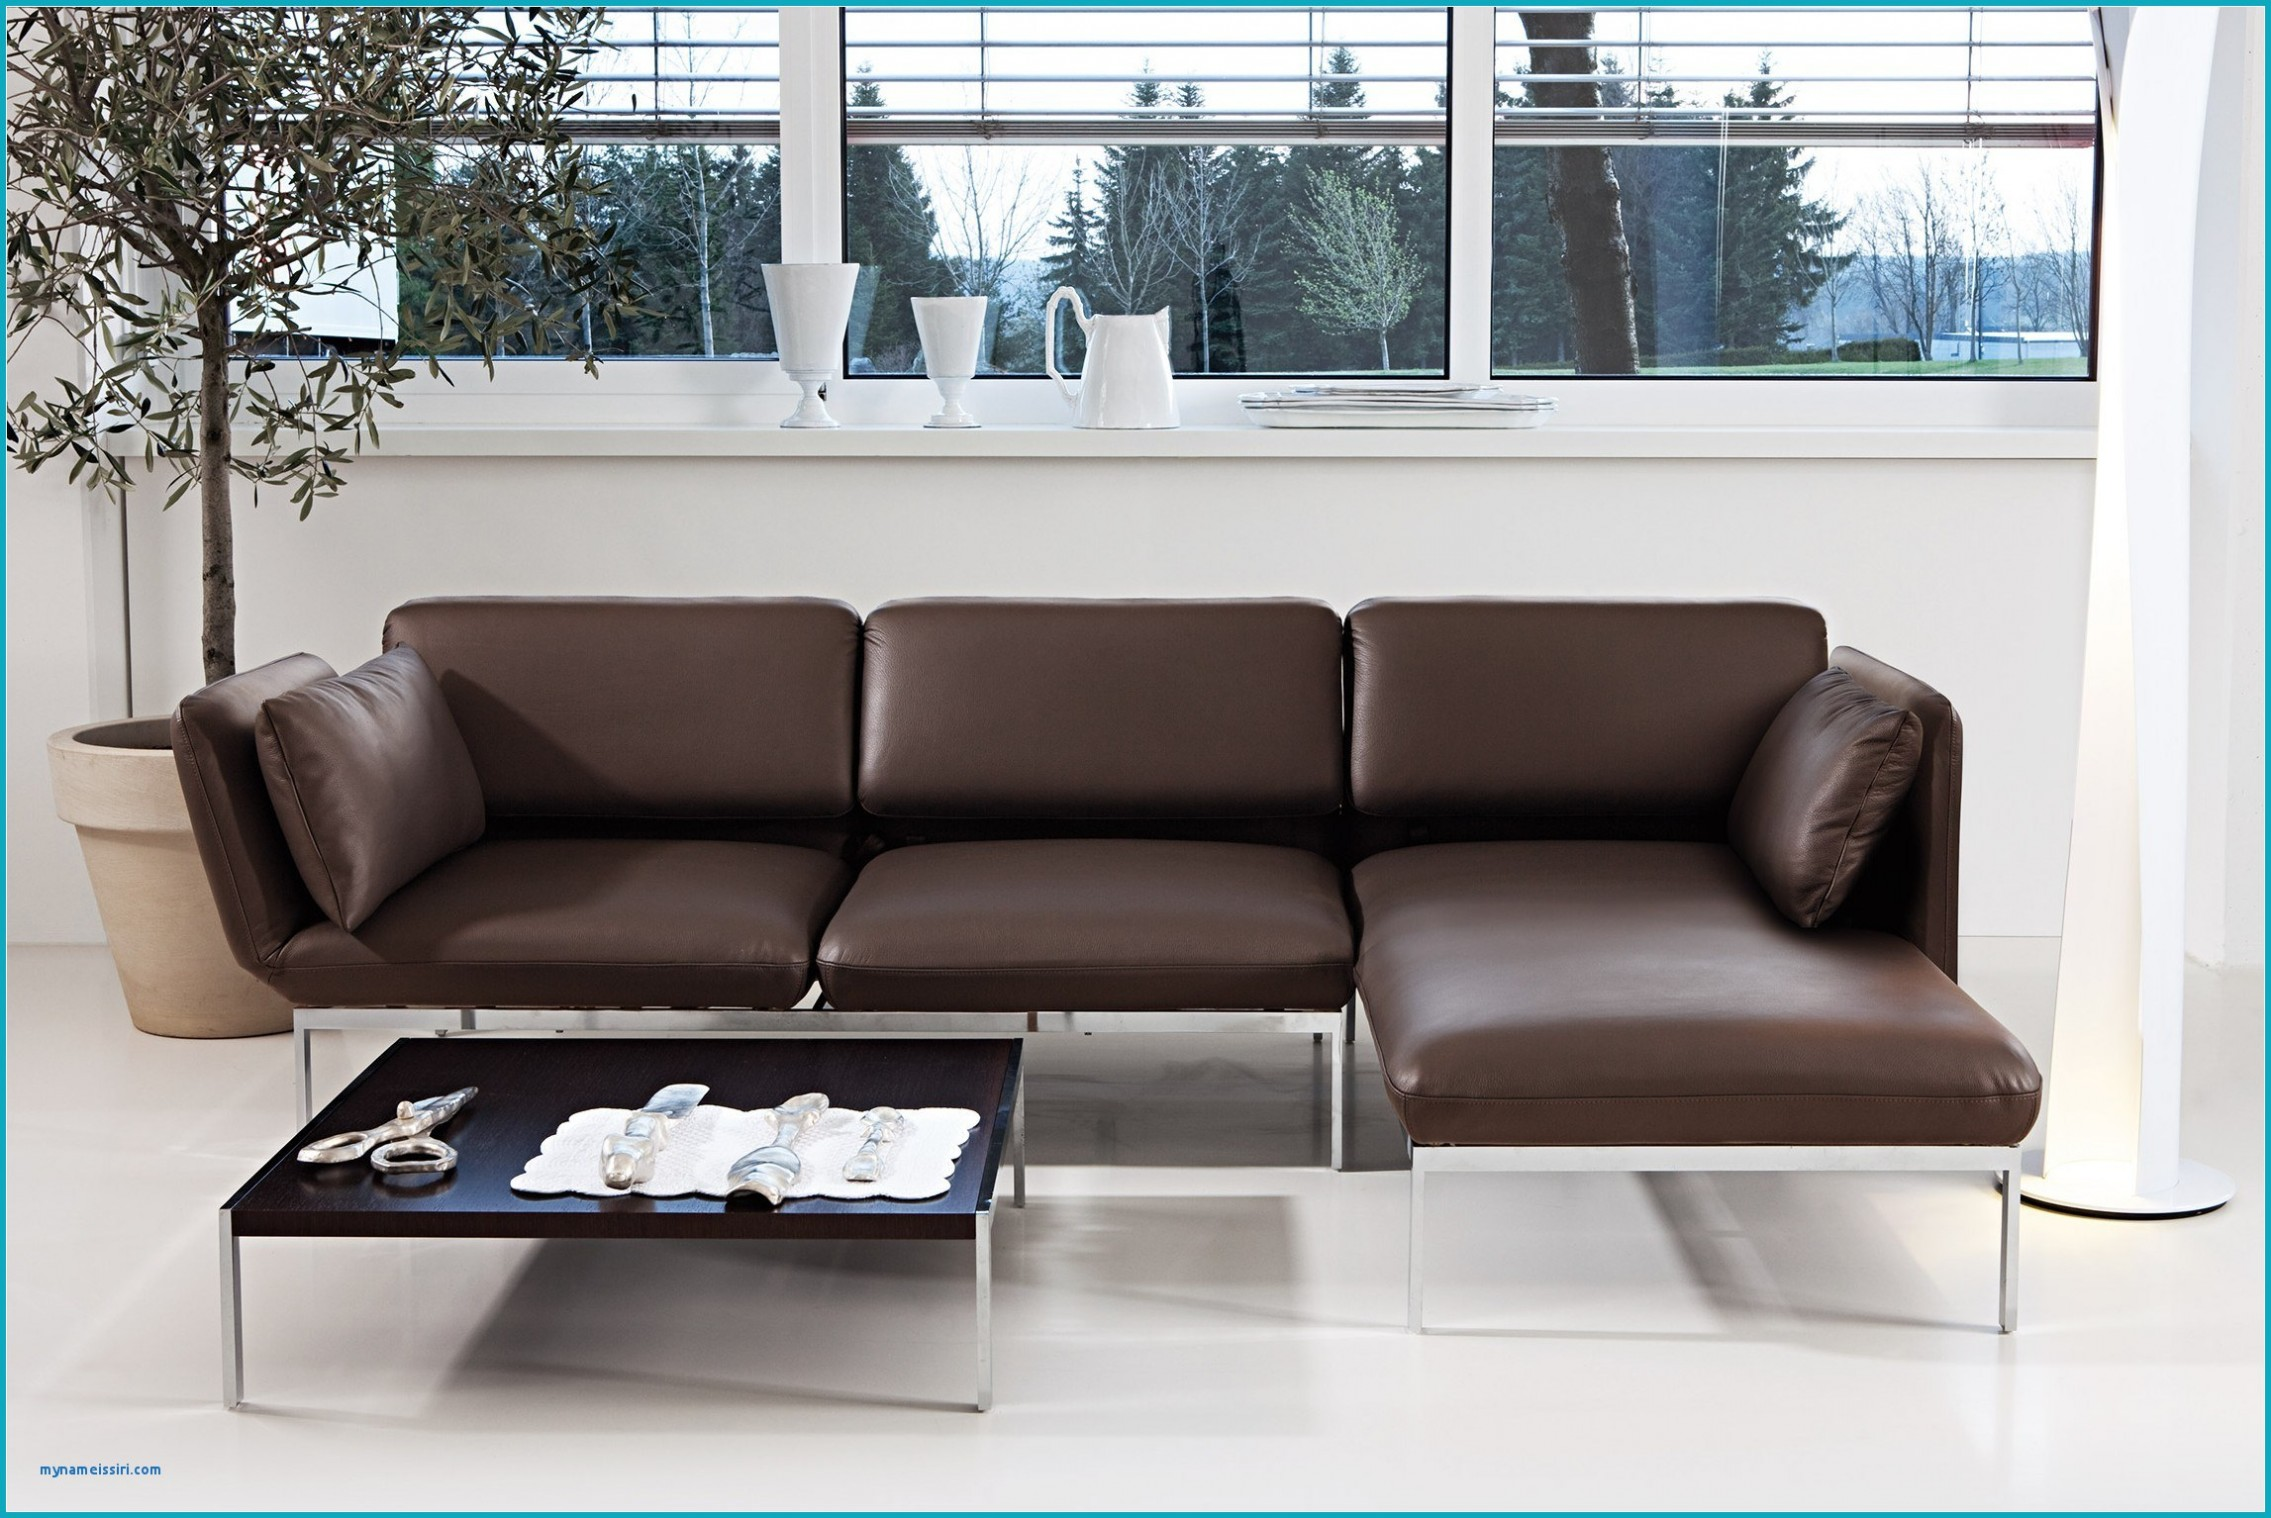 Schlafsofa Günstig Hamburg Hamburg Mbel Design Great Cheap Beautiful Bursian Mbel Design